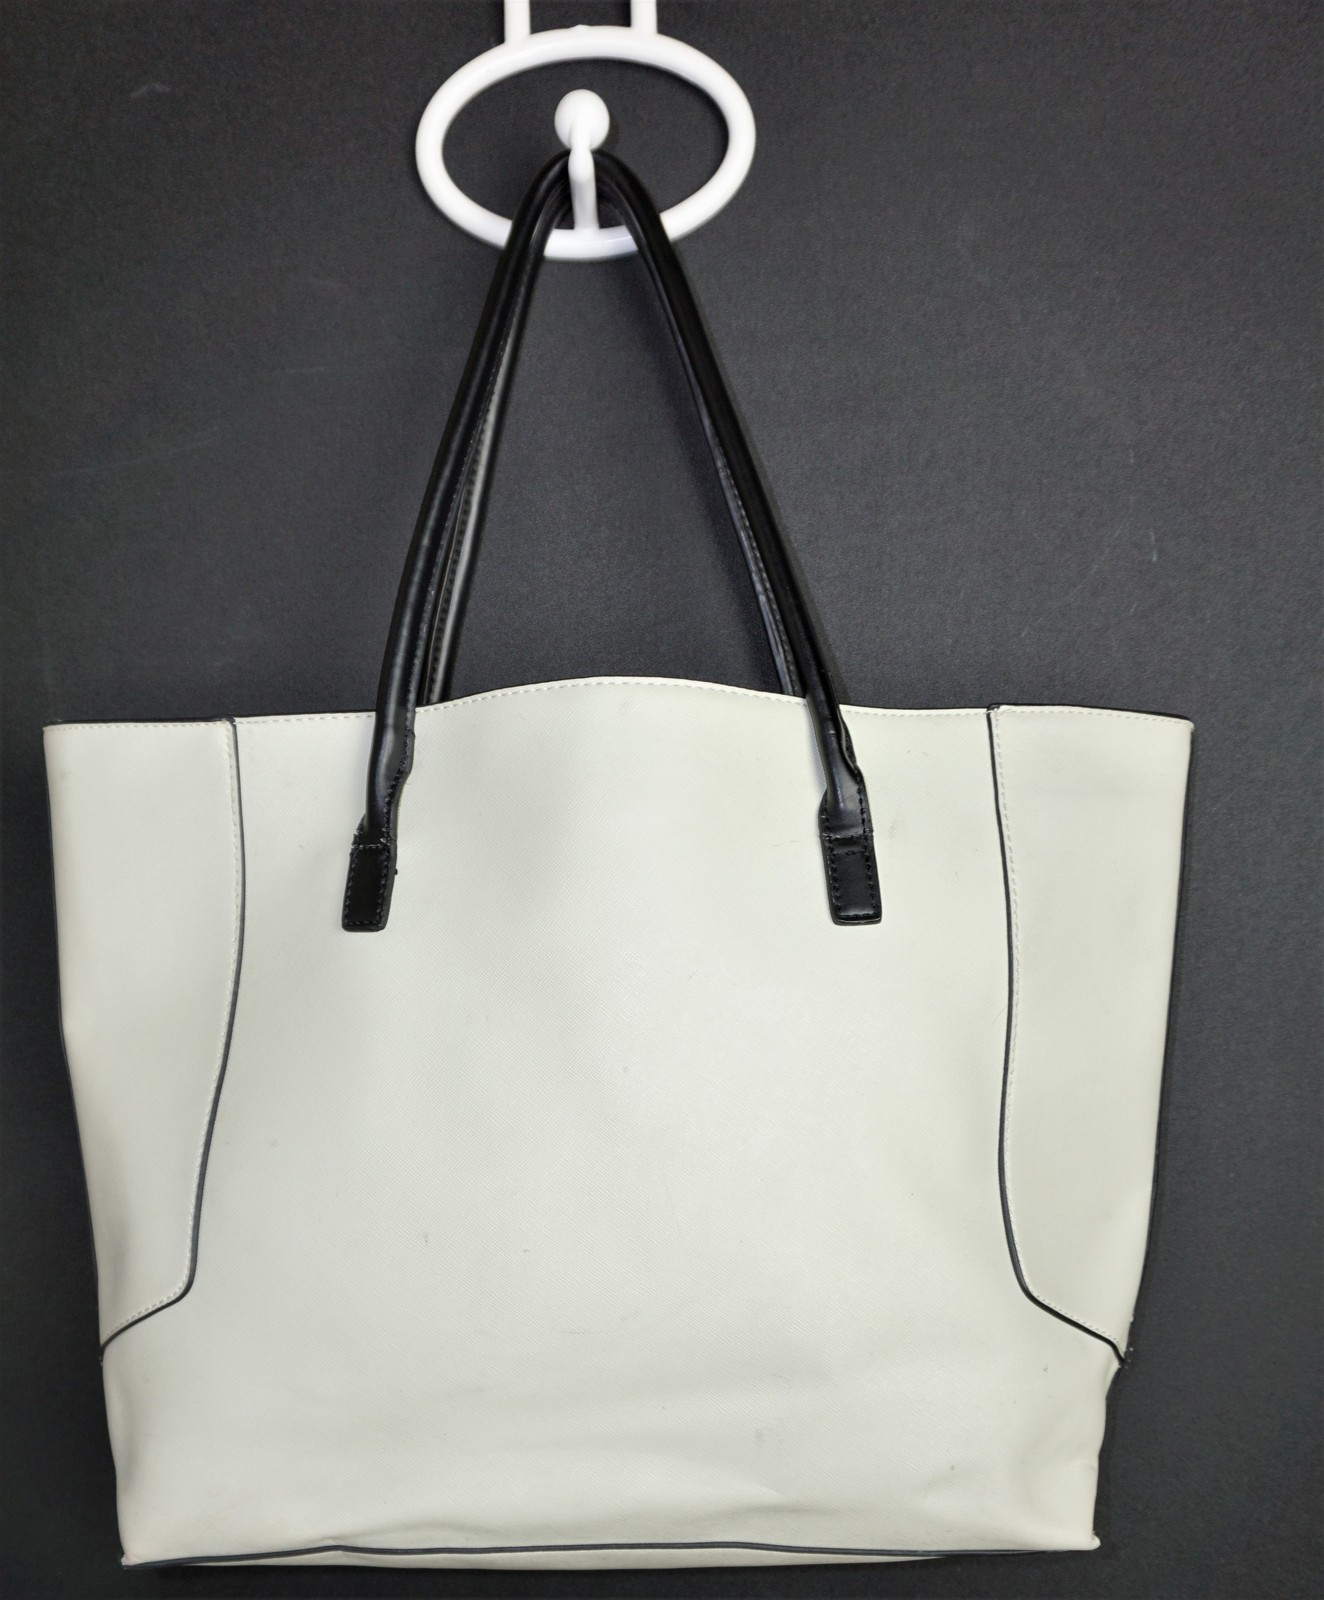 019aff00c403 Aldo Cream with Navy Accents Large Faux Leather Purse Tote Shopper